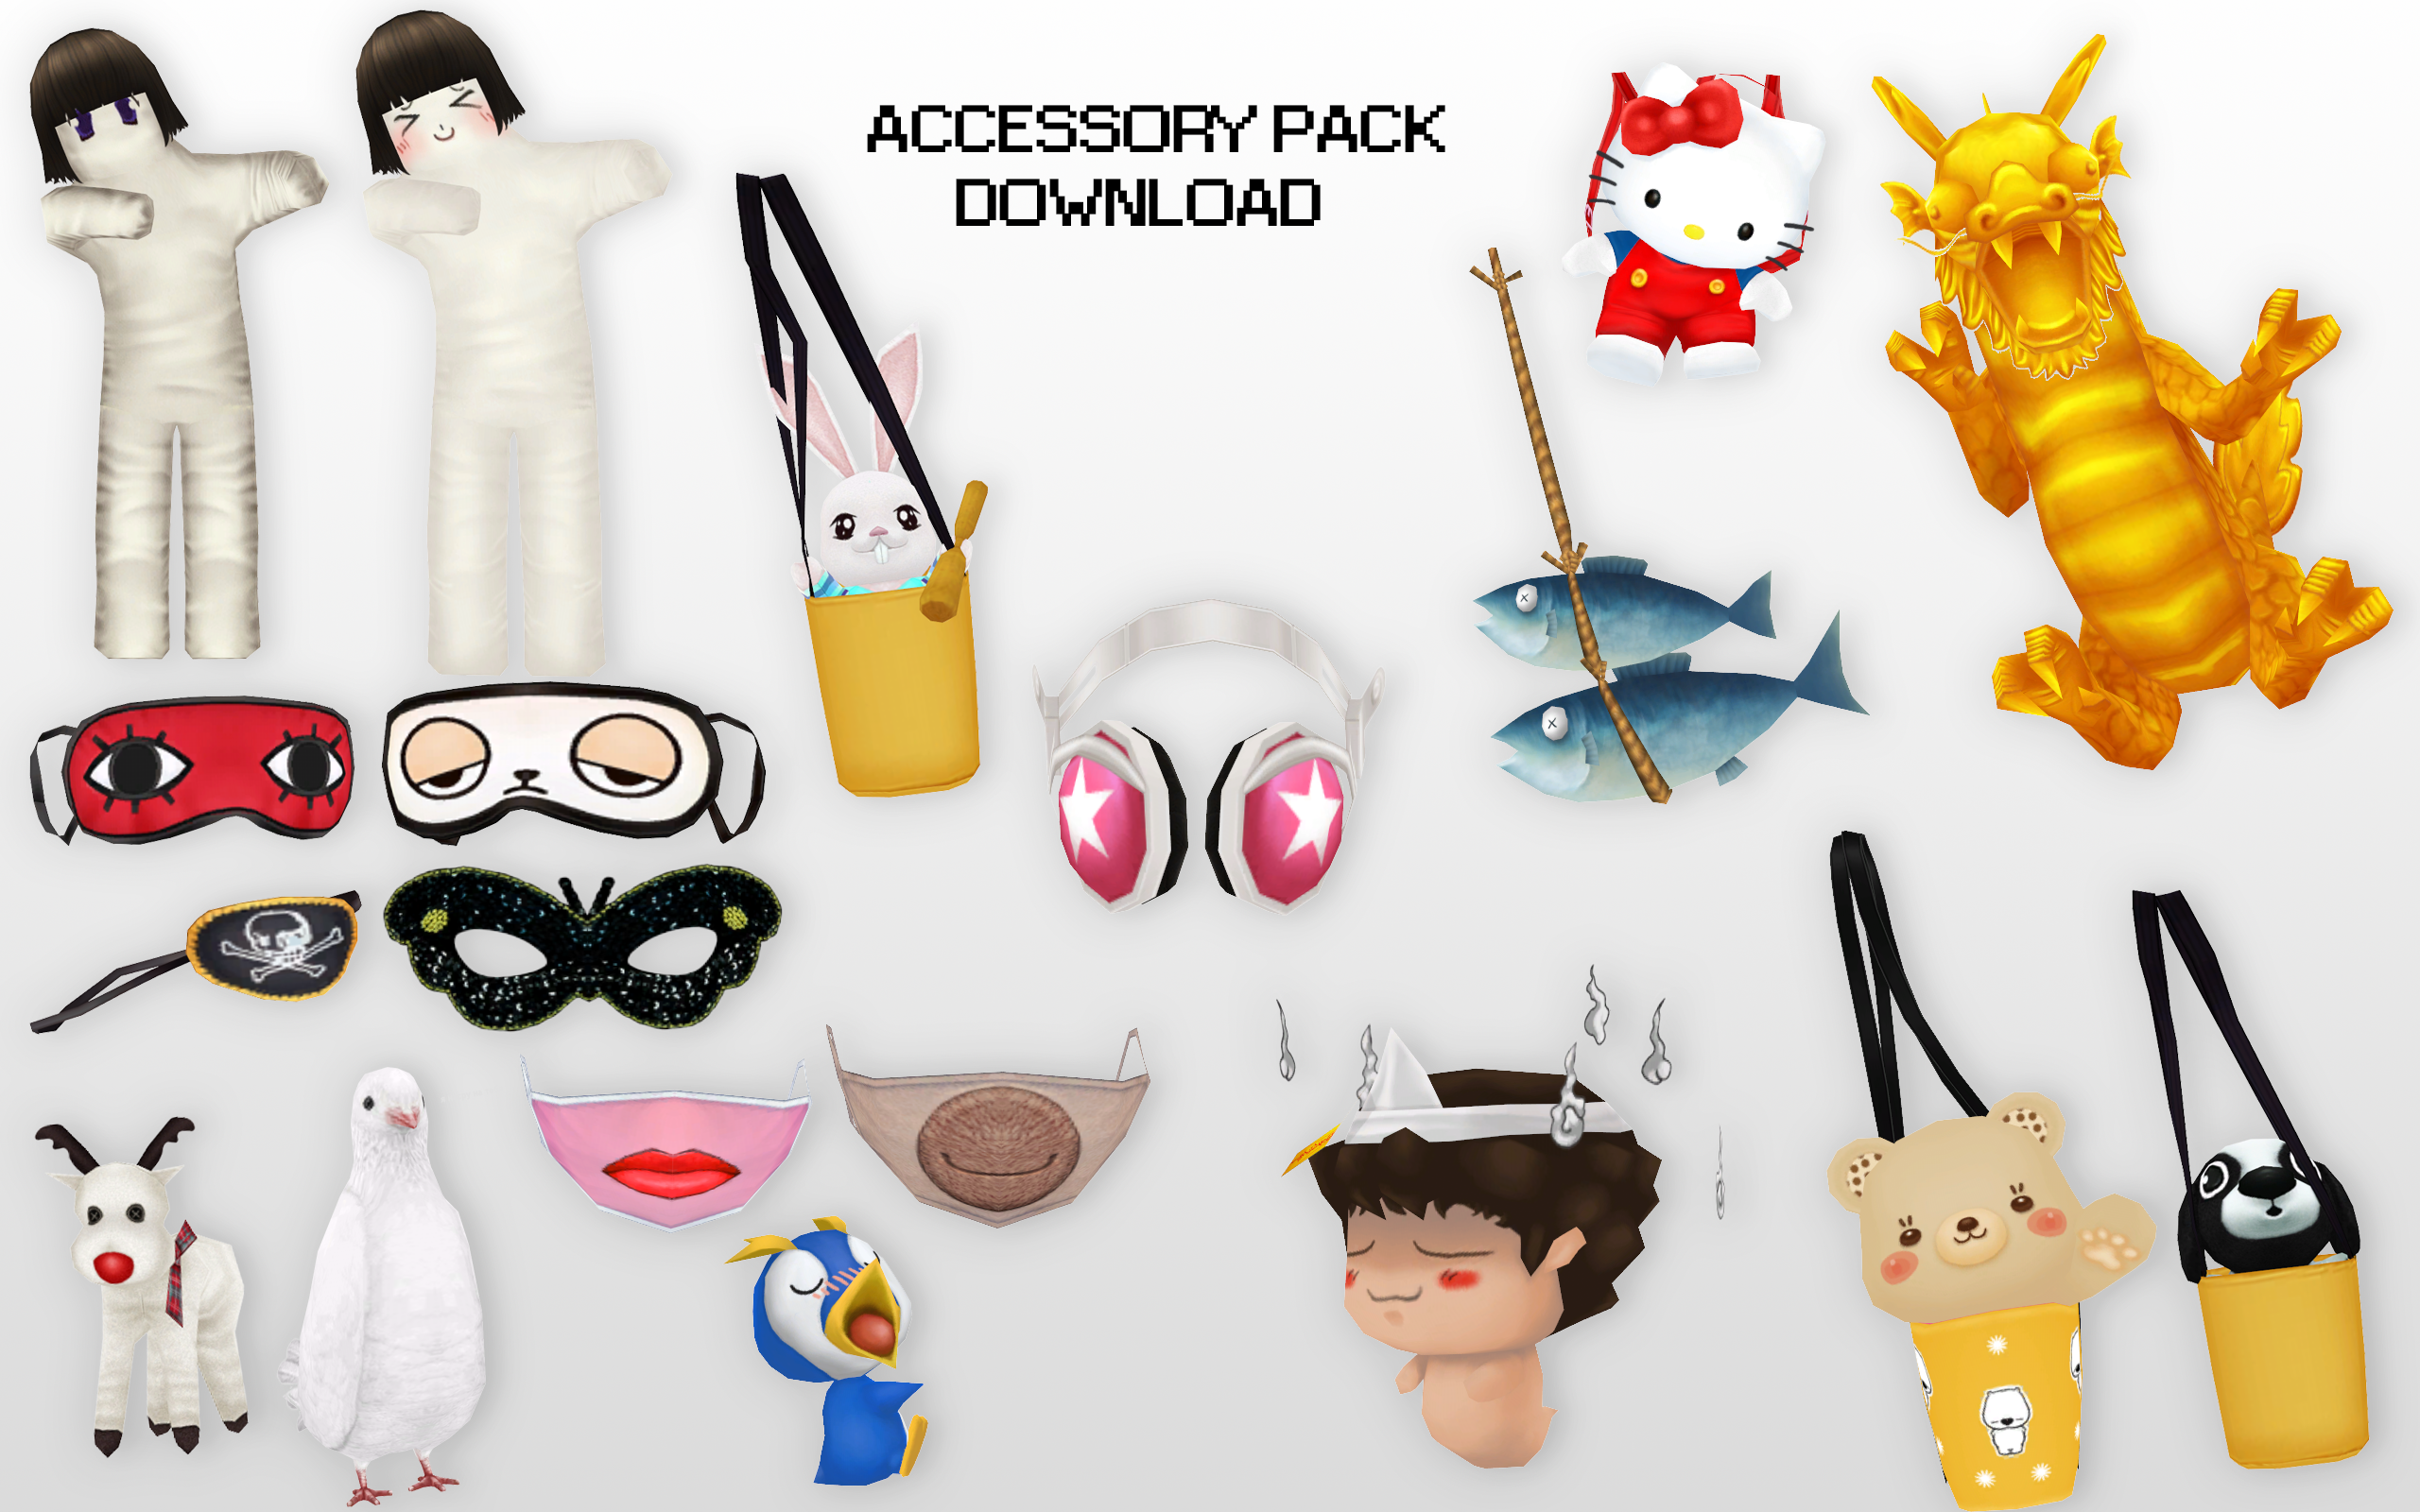 Mmd accessories download